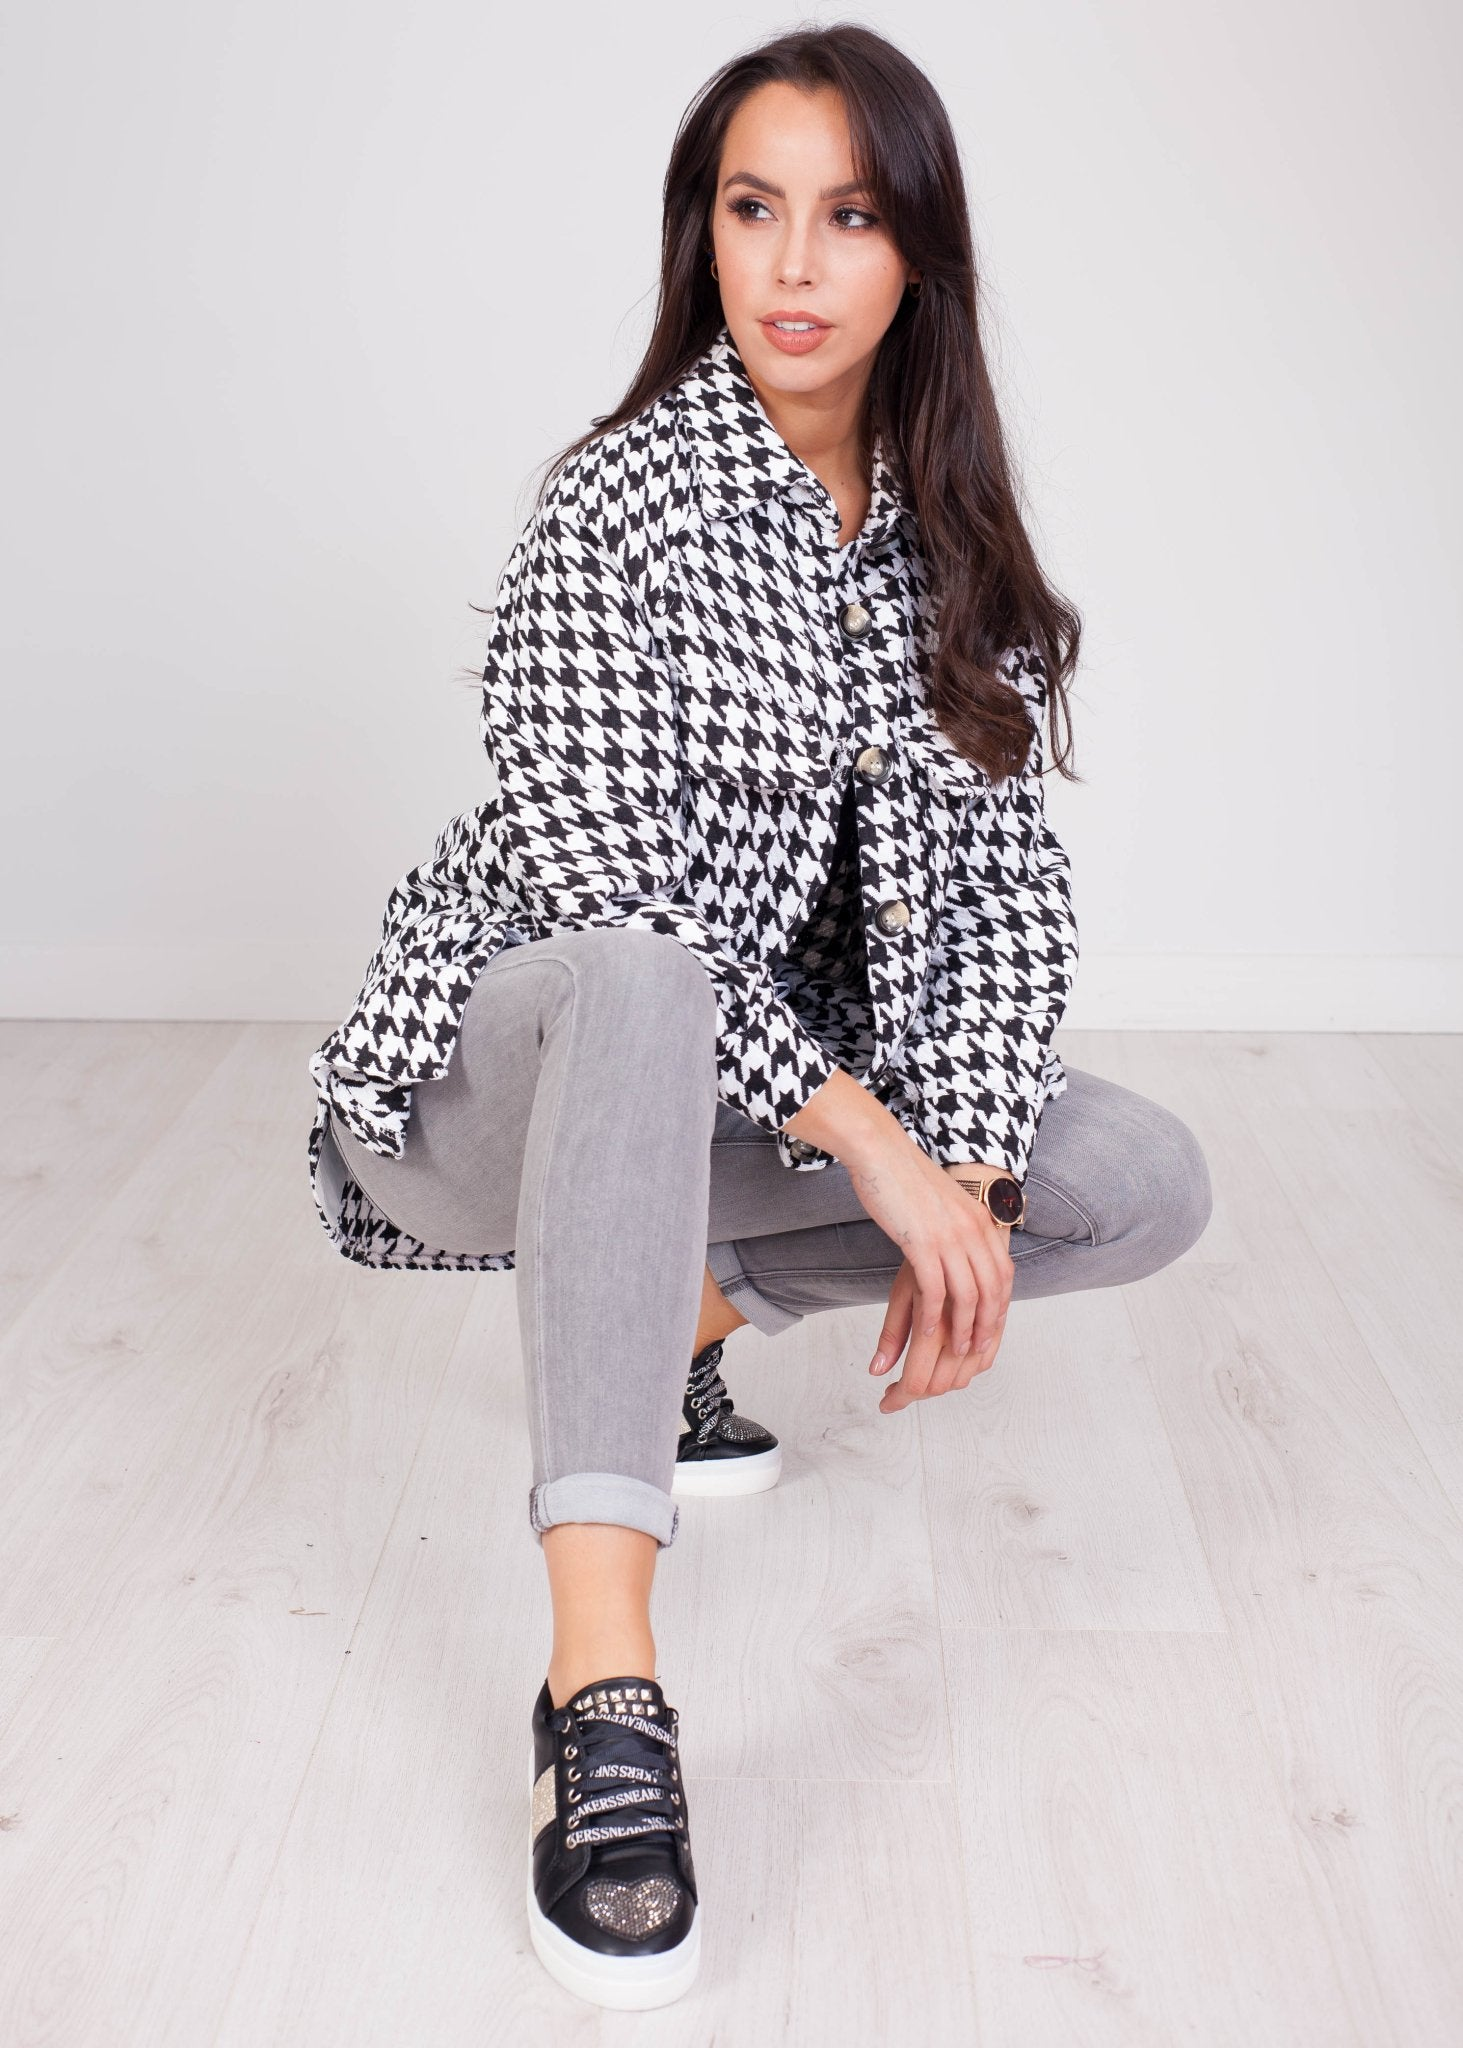 Emilia White & Black Houndstooth Shacket - The Walk in Wardrobe